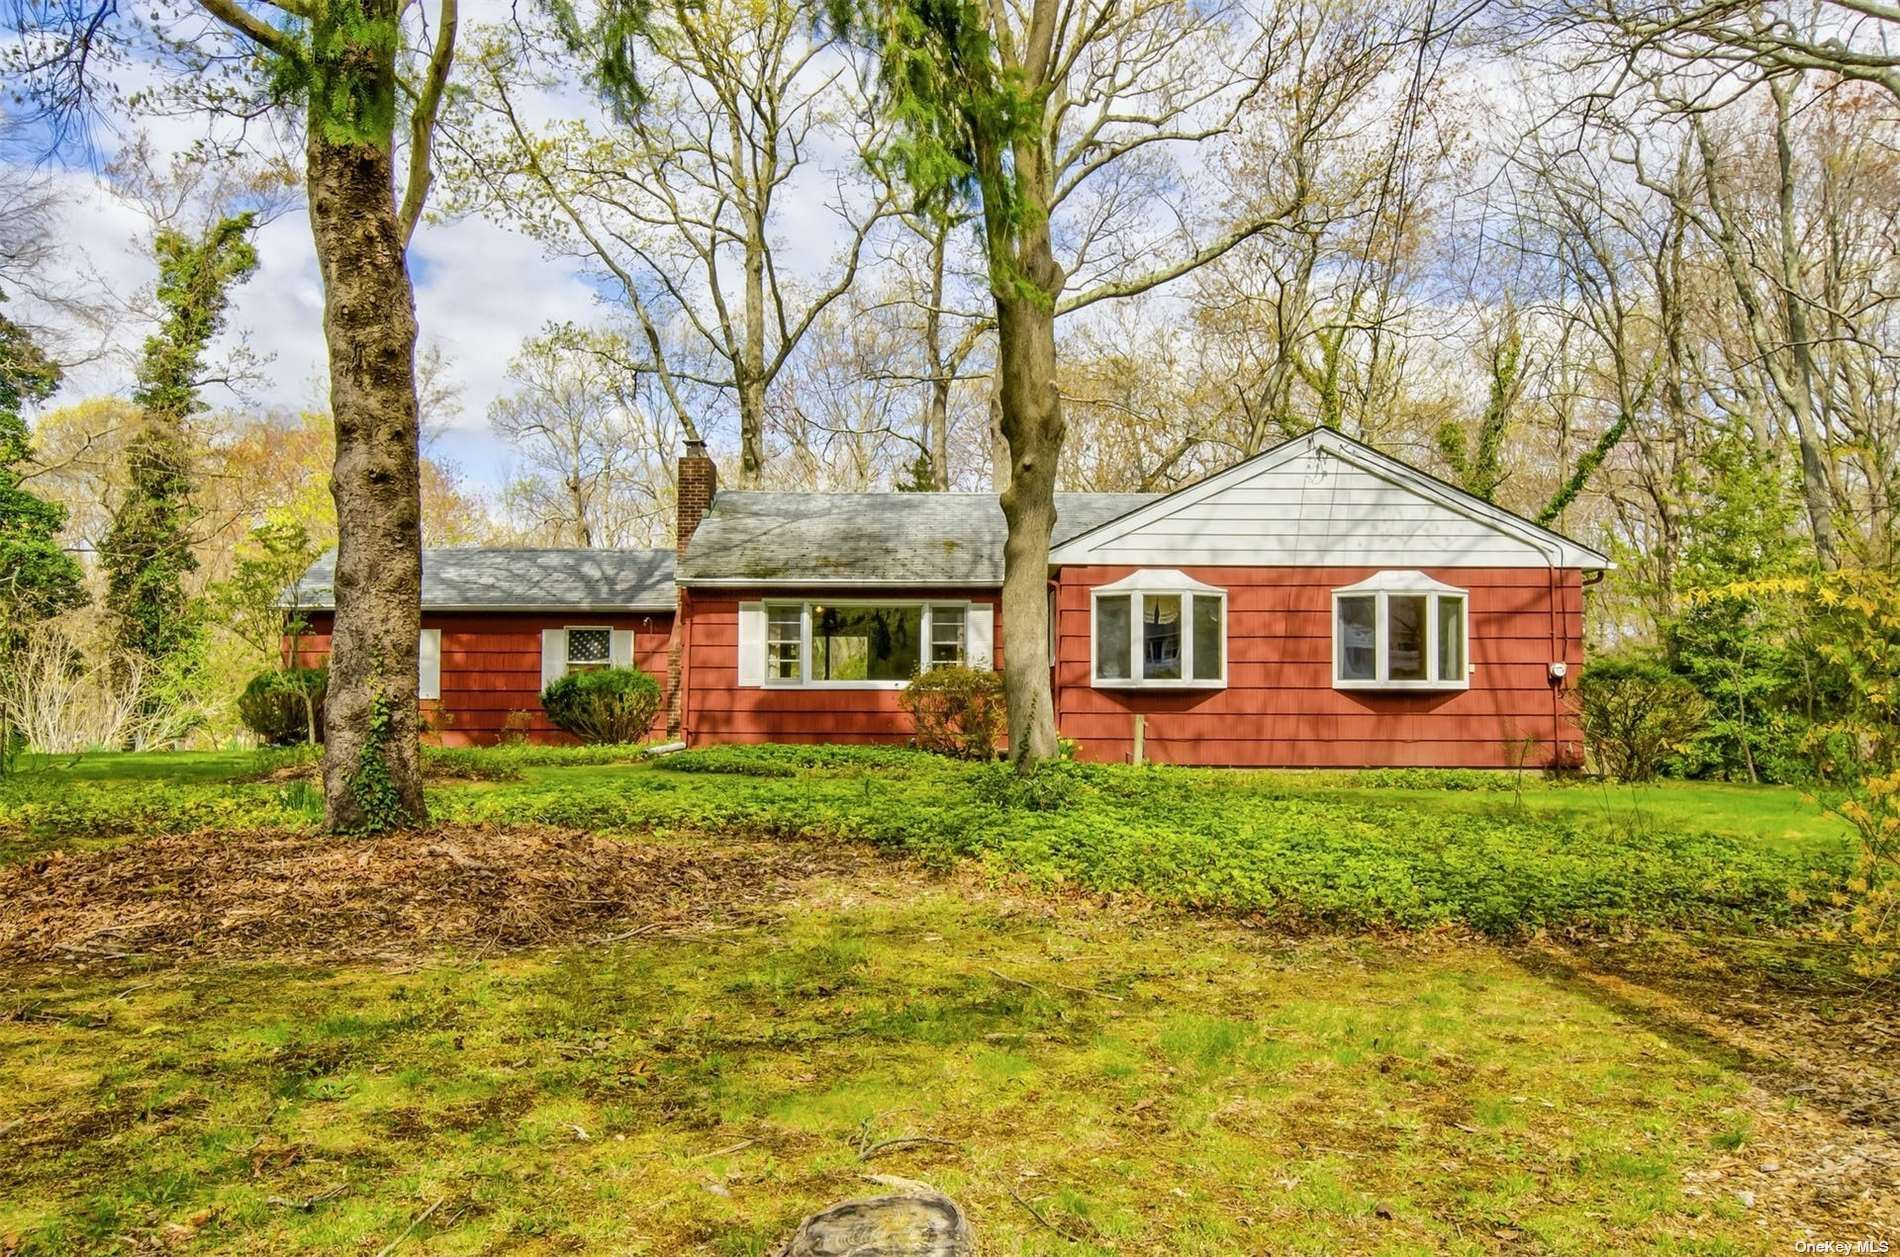 Photo of 11 Green Acre Lane, Northport, NY 11768 (MLS # 3306225)